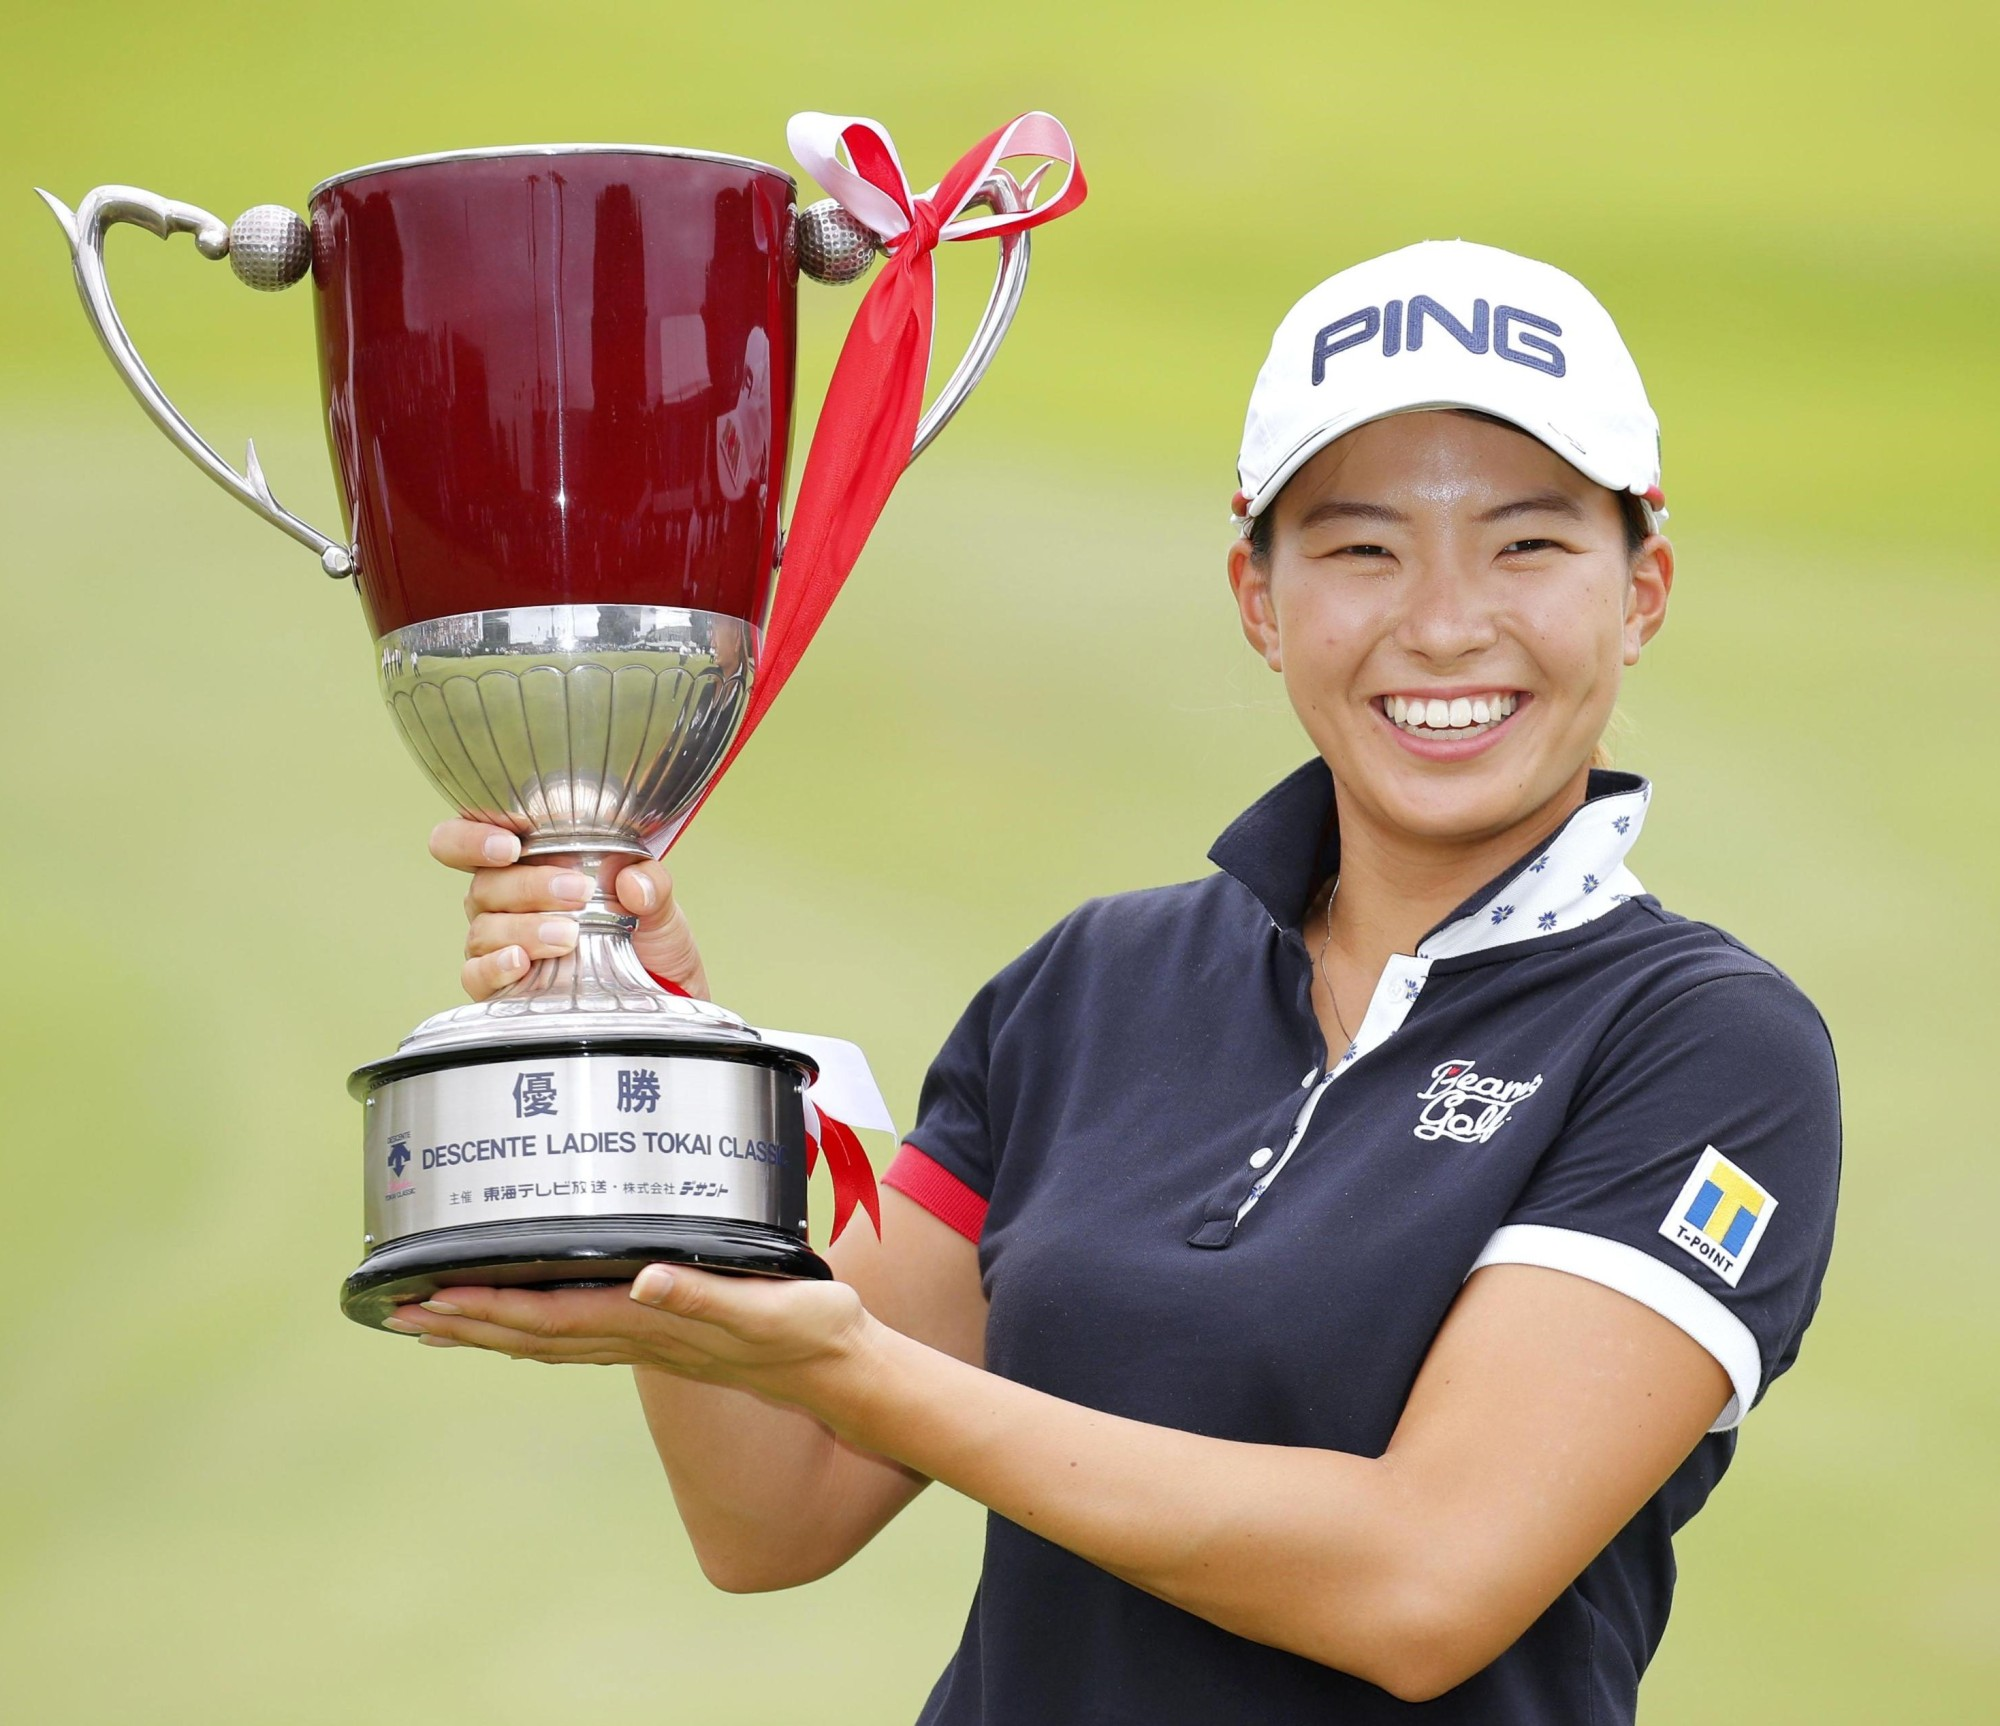 Hinako Shibuno poses with her trophy after winning the Descente Ladies Tokai Classic in Mihama, Aichi Prefecture.   KYODO